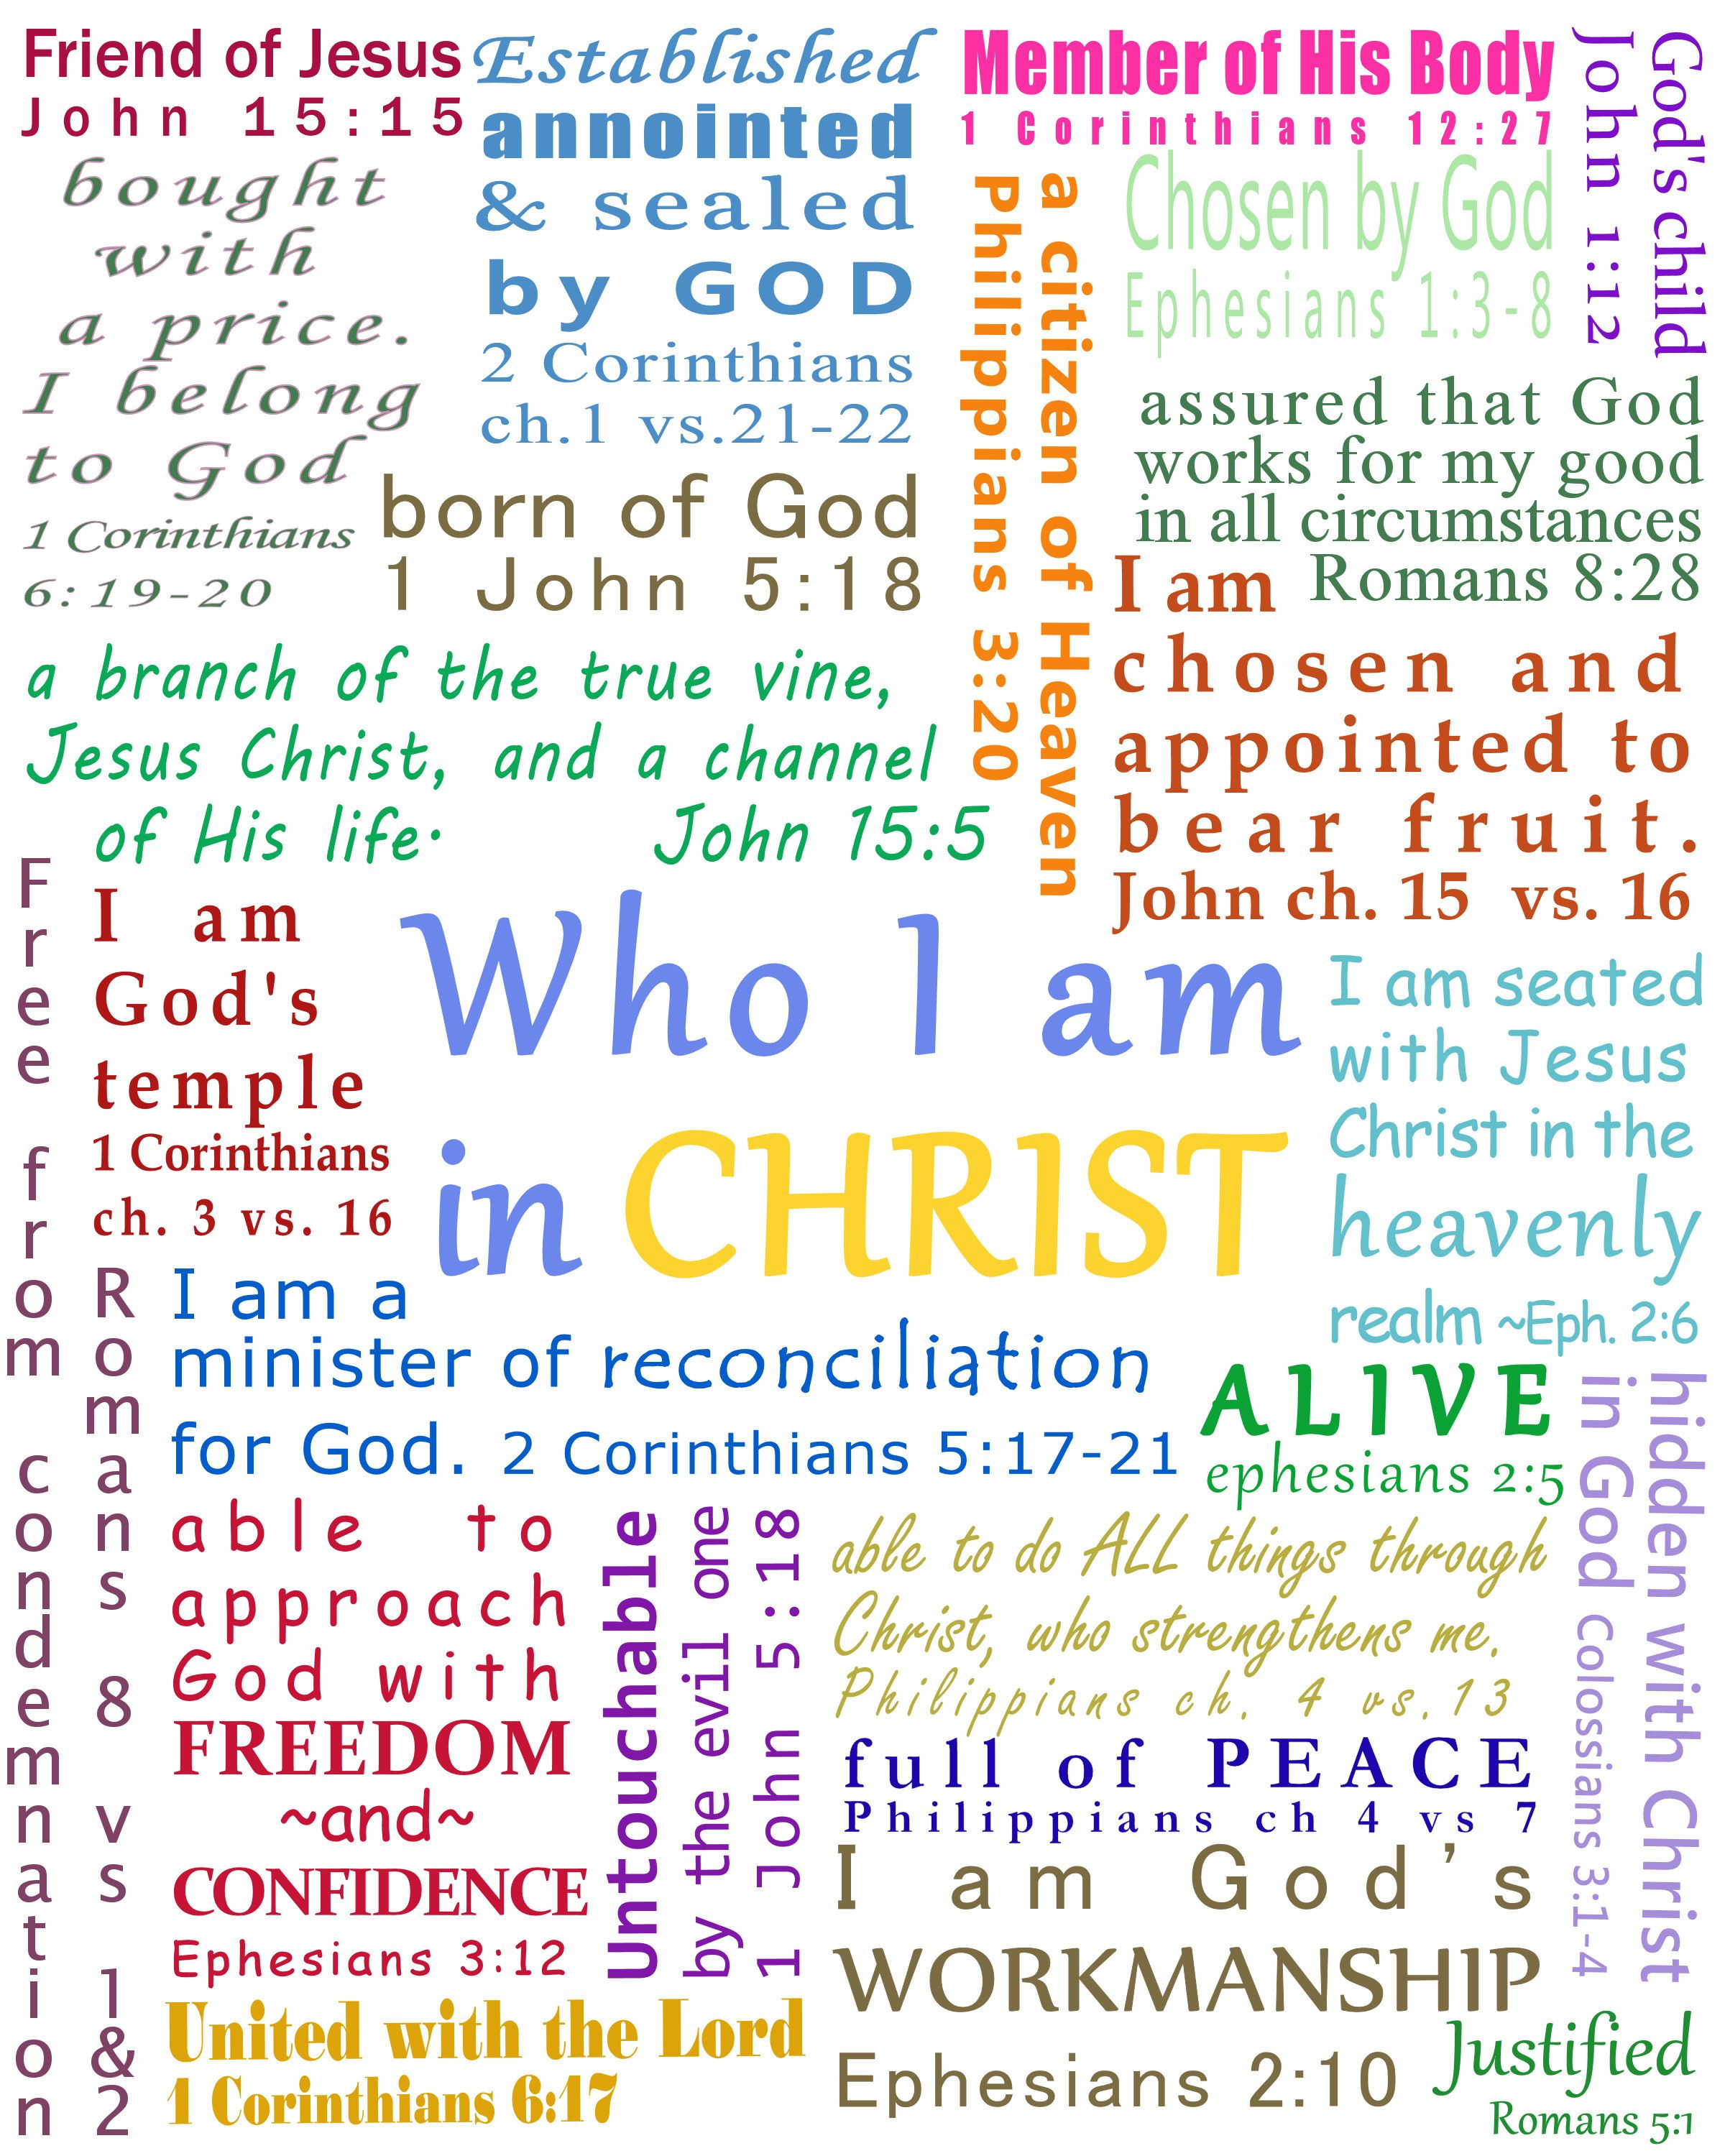 Who I Am In Christ Neil Anderson